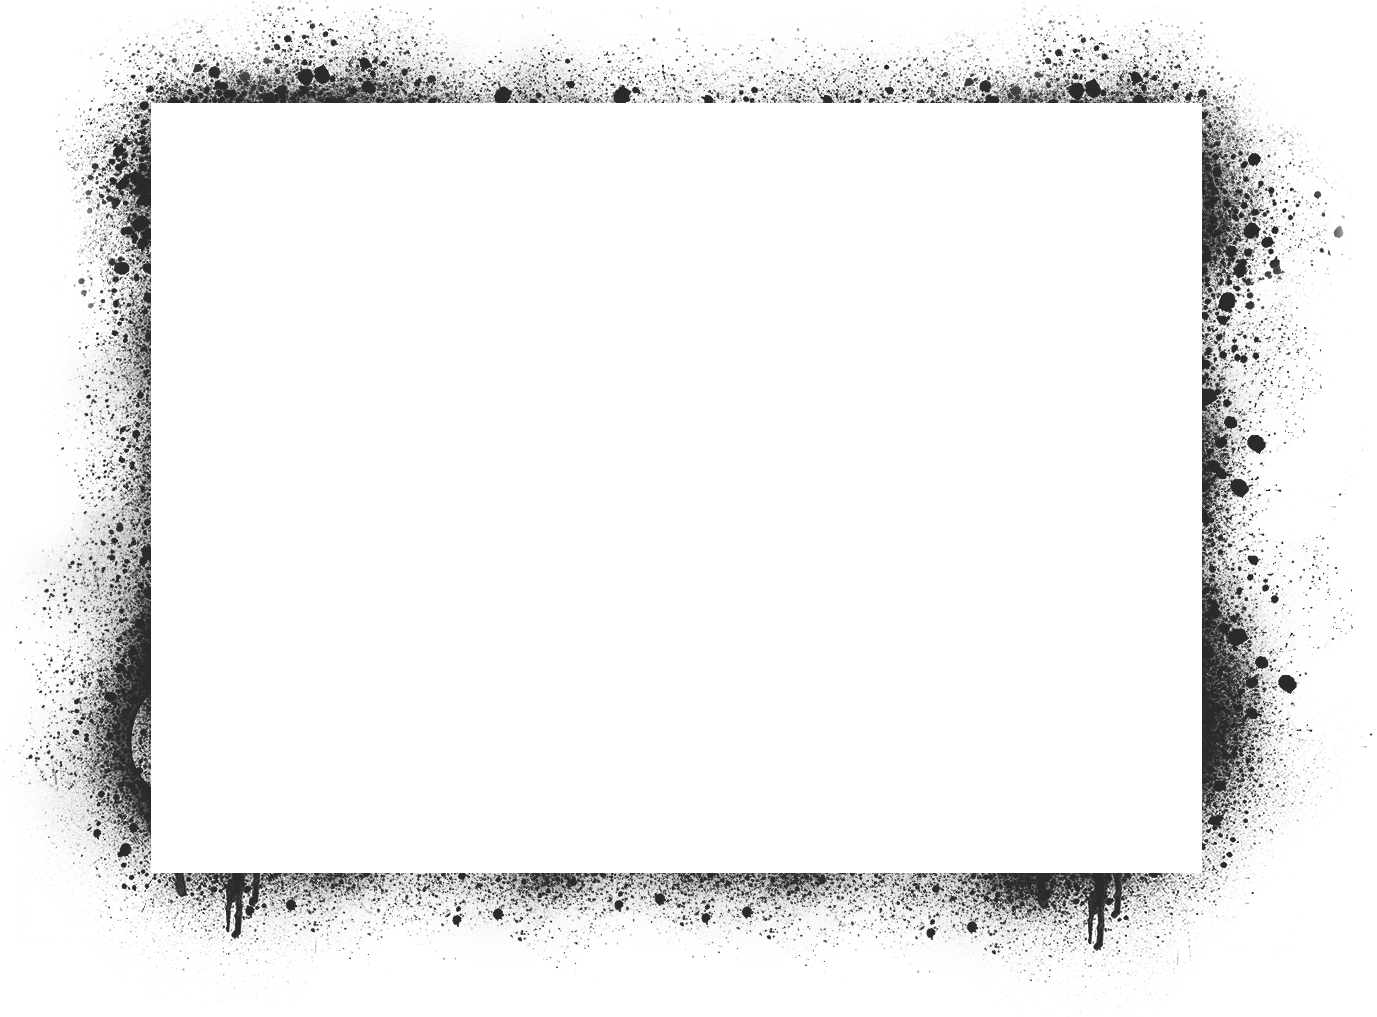 picture_frame_PNG205.png